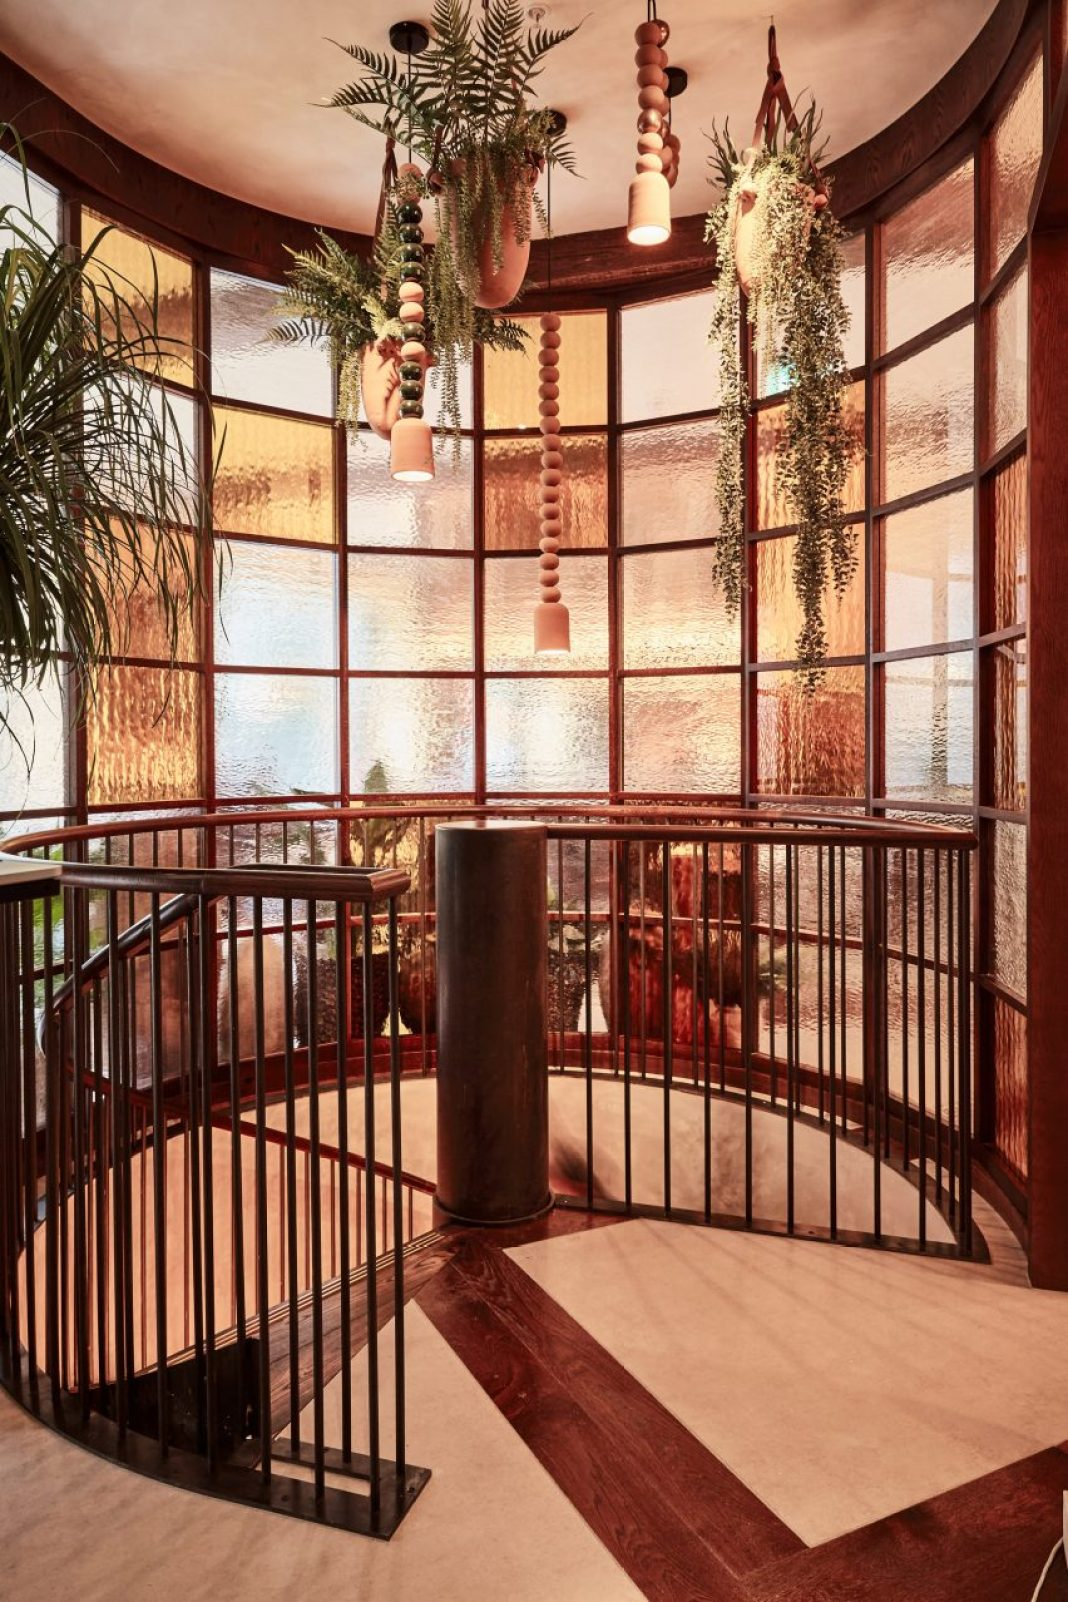 Kol restaurant in London includes spiral staircase